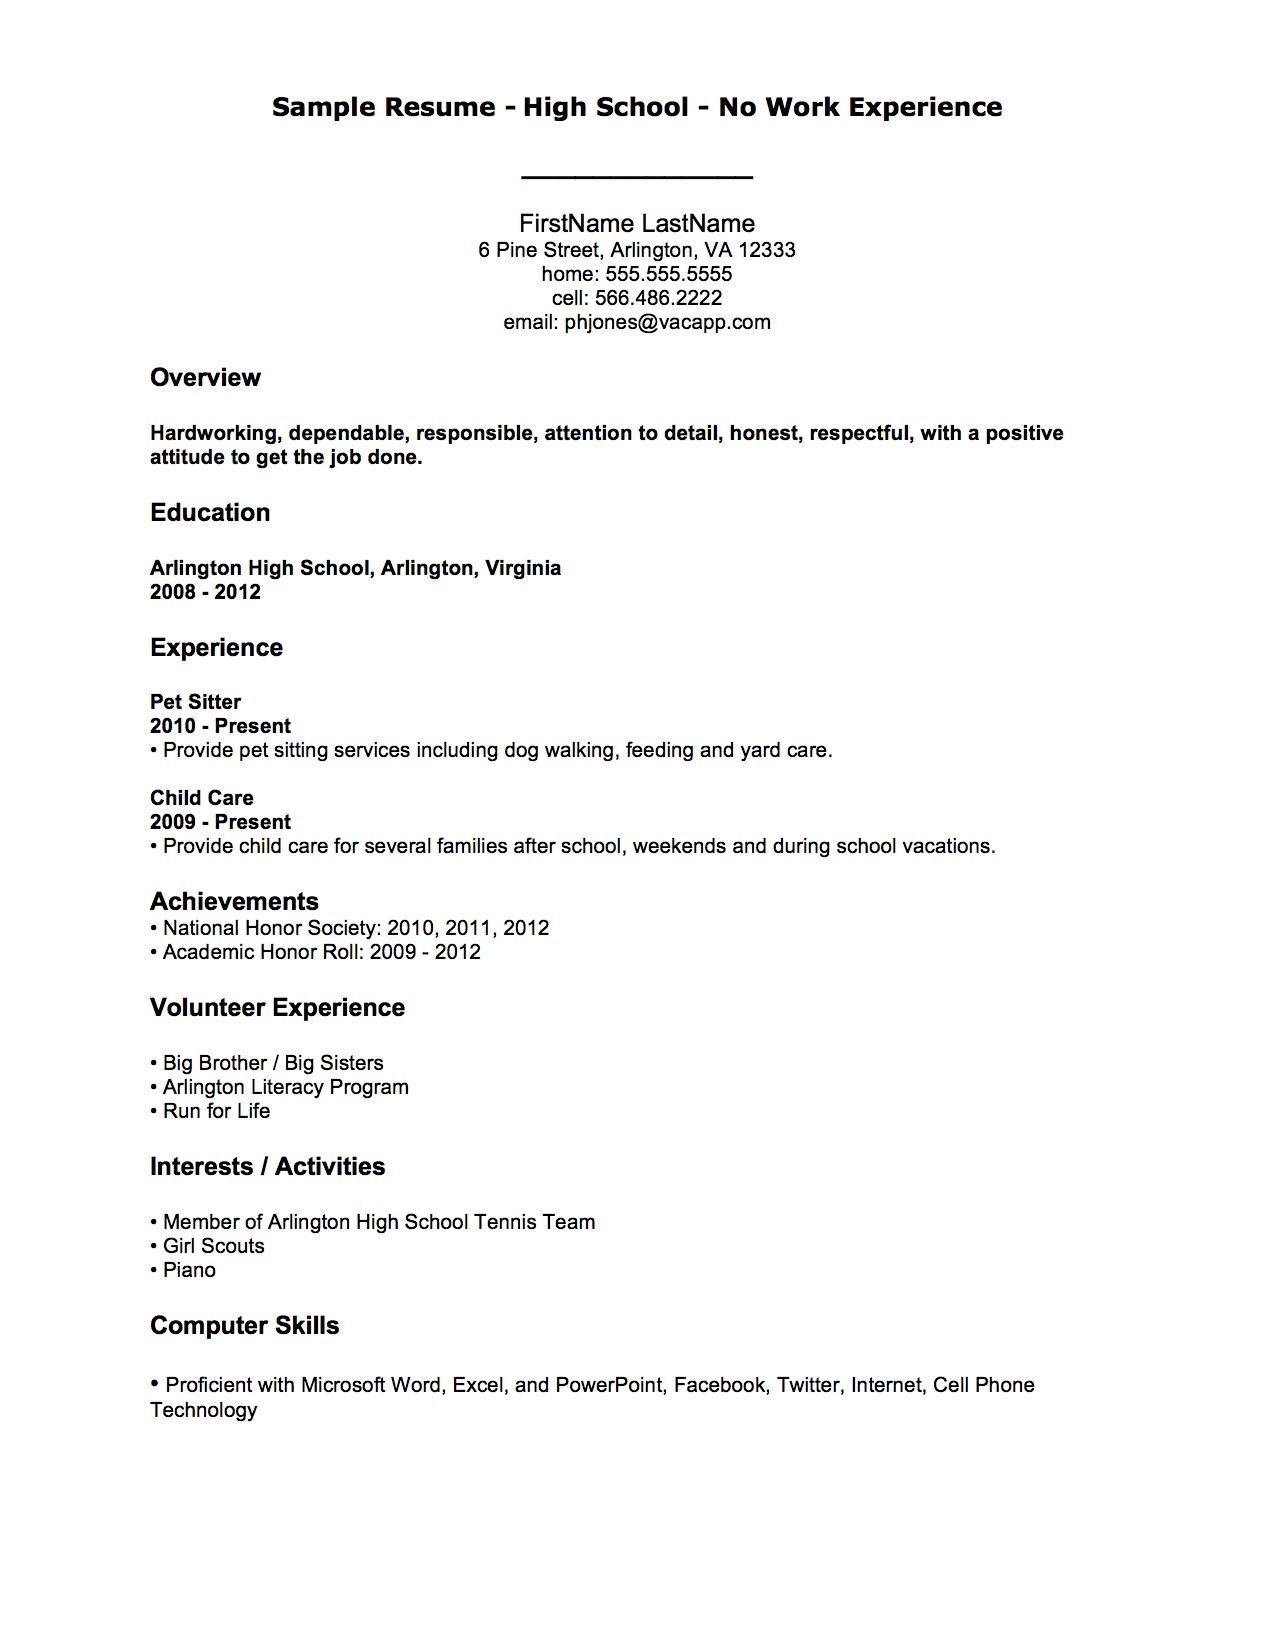 resume templates with no job experience